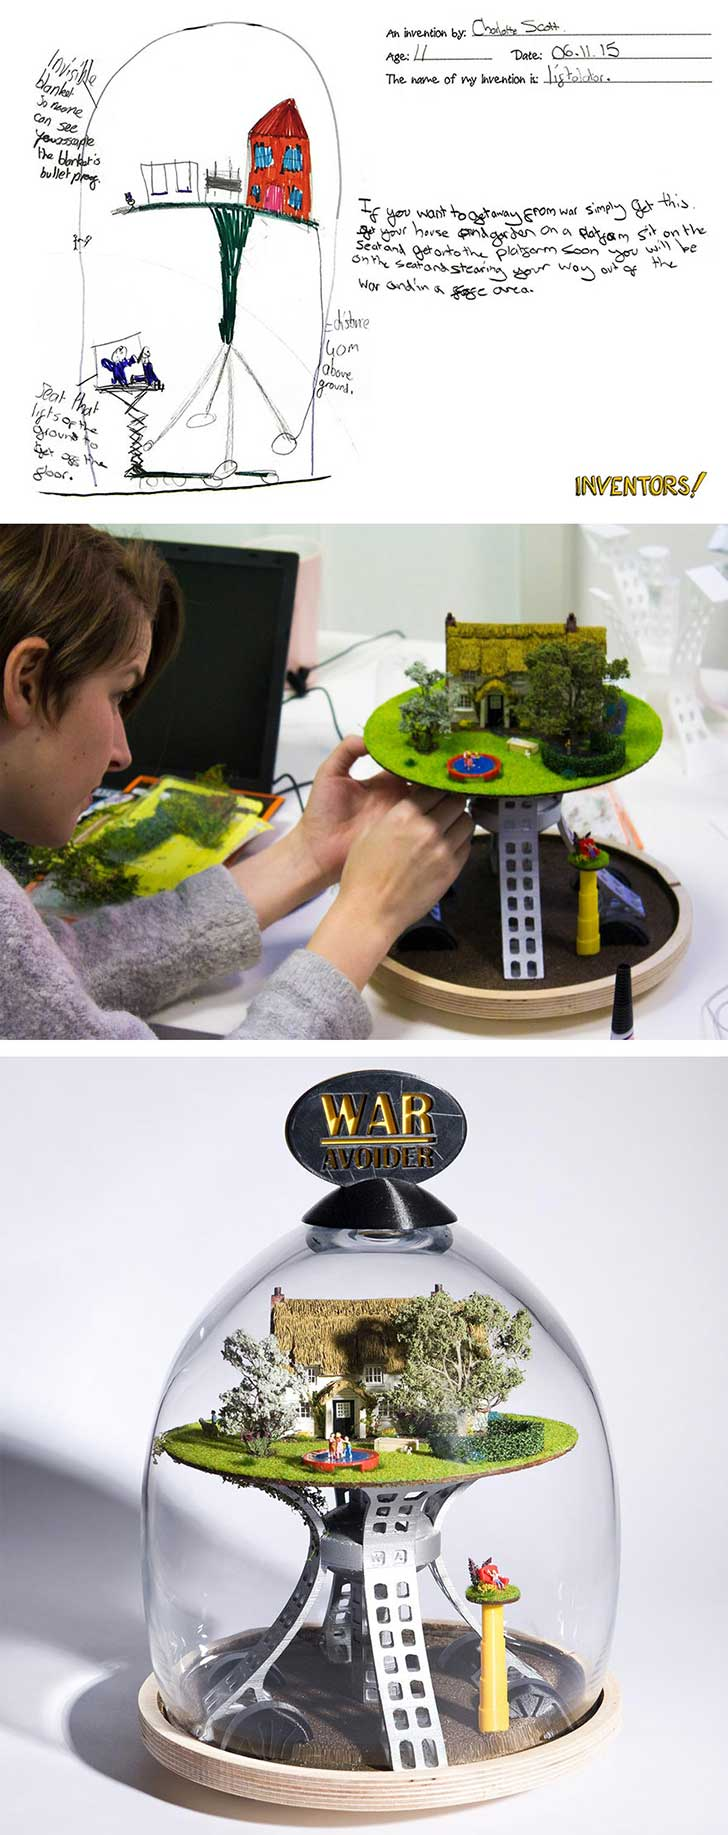 kids-inventions-turned-into-reality-inventors-project-dominic-wilcox-74__880-1